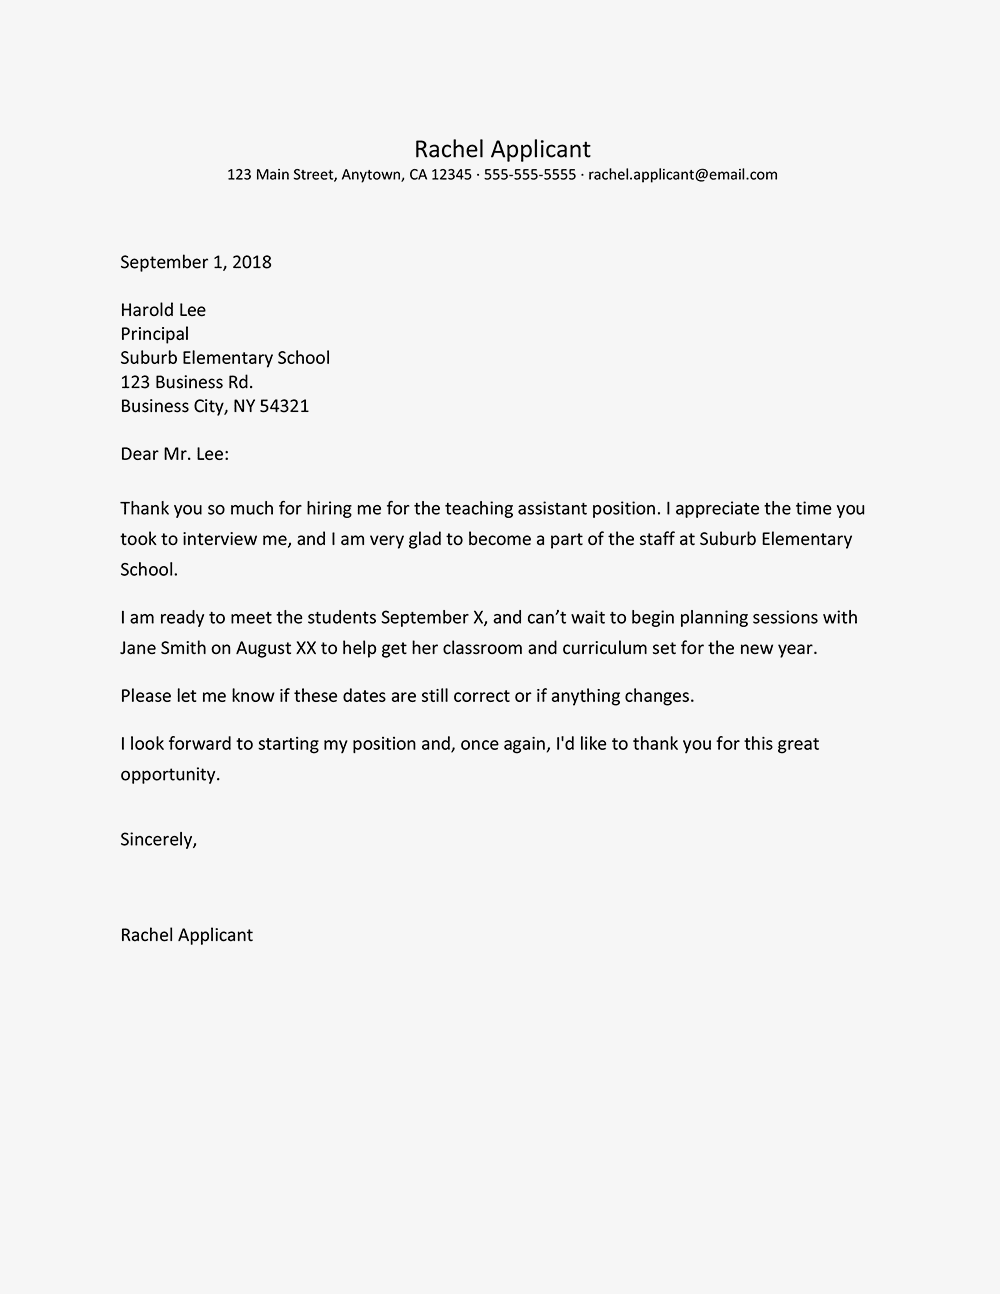 job offer thank you letter and email samples